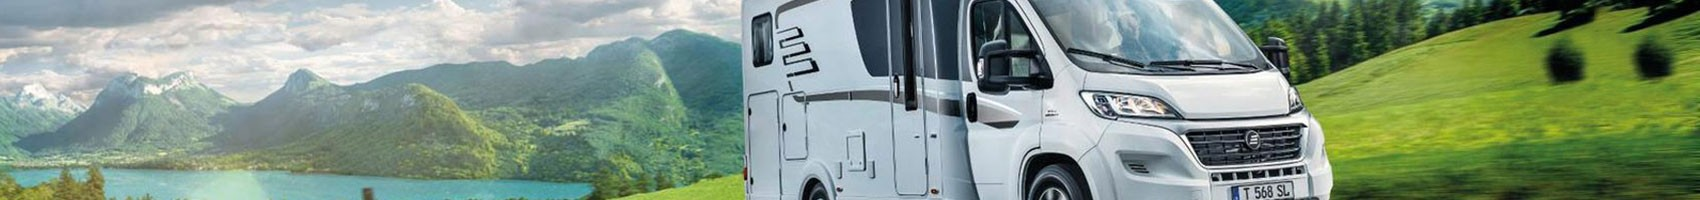 Hymer Motorhomes Buying Guide